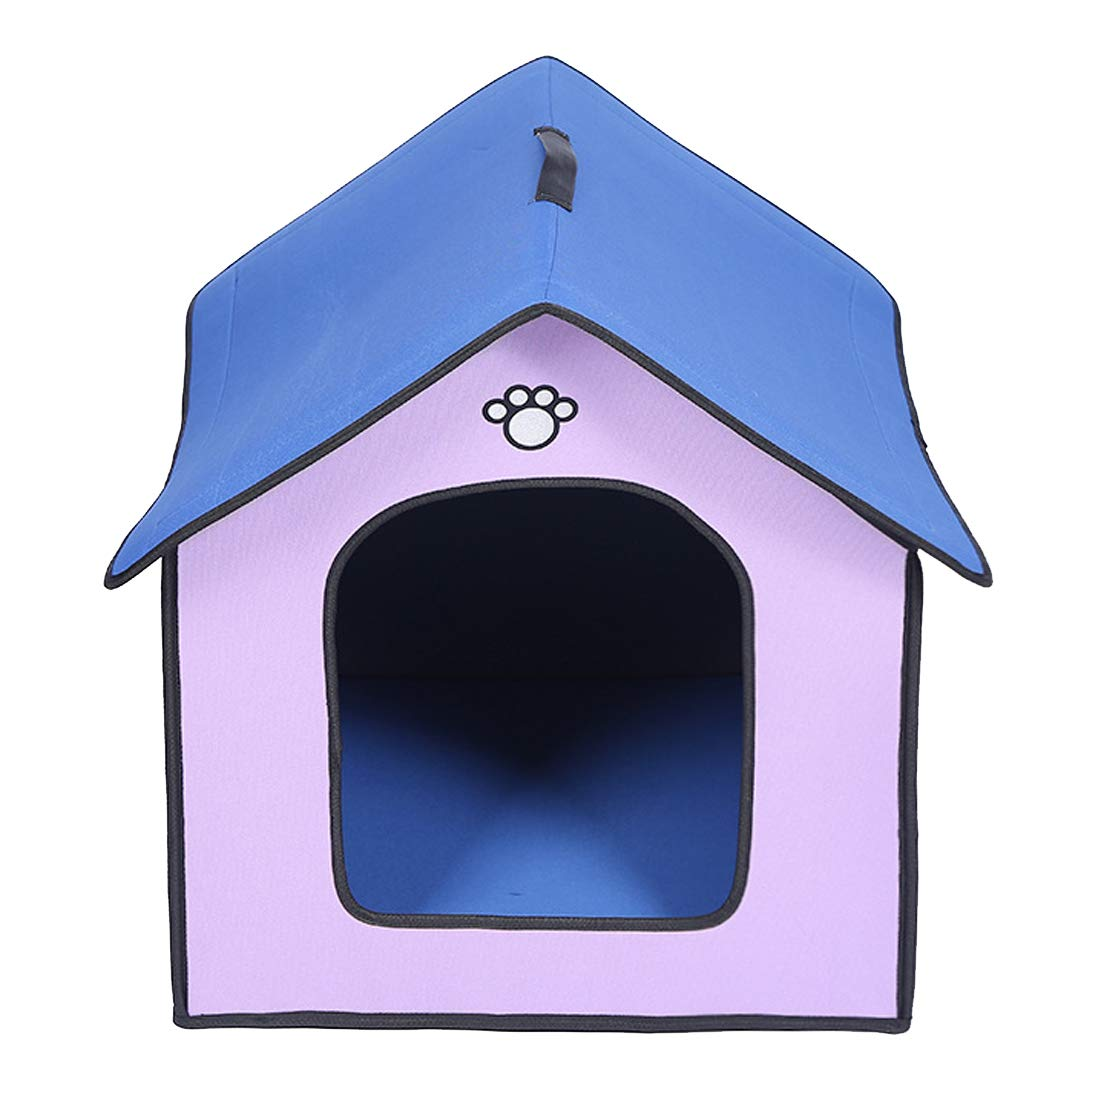 B Zhyaj Large Dog Kennel Outdoor Dog House For Large Dogs Outdoor Dog Kennel Rainproof And Waterproof Cool Breathable Foldable Resistant Bite Reinforced Corner Non-Toxic And Tasteless Purple,B